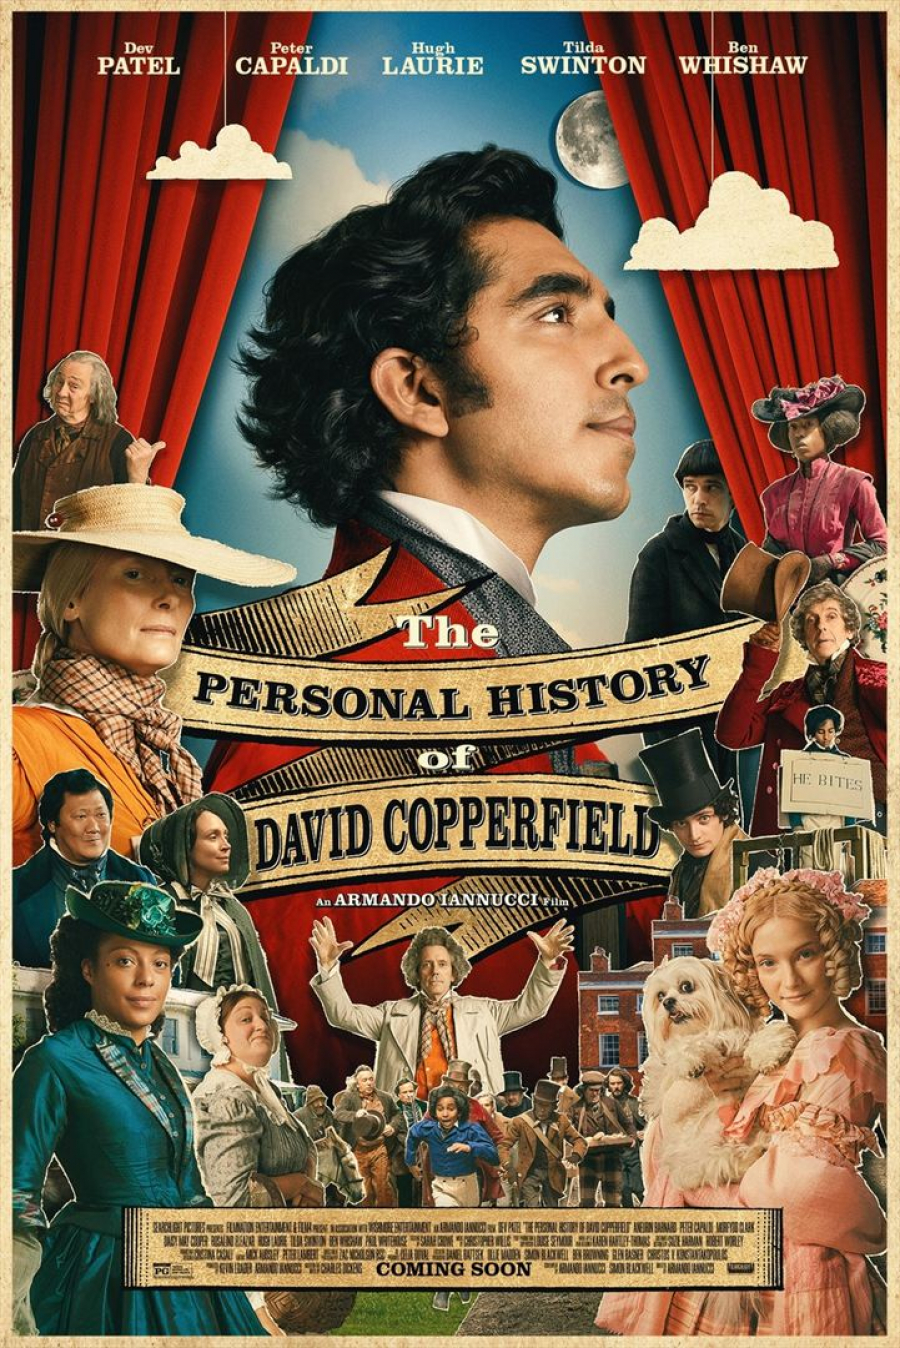 THE PERSONAL HISTORY OF DAVID COPPERFIELD (VOst)